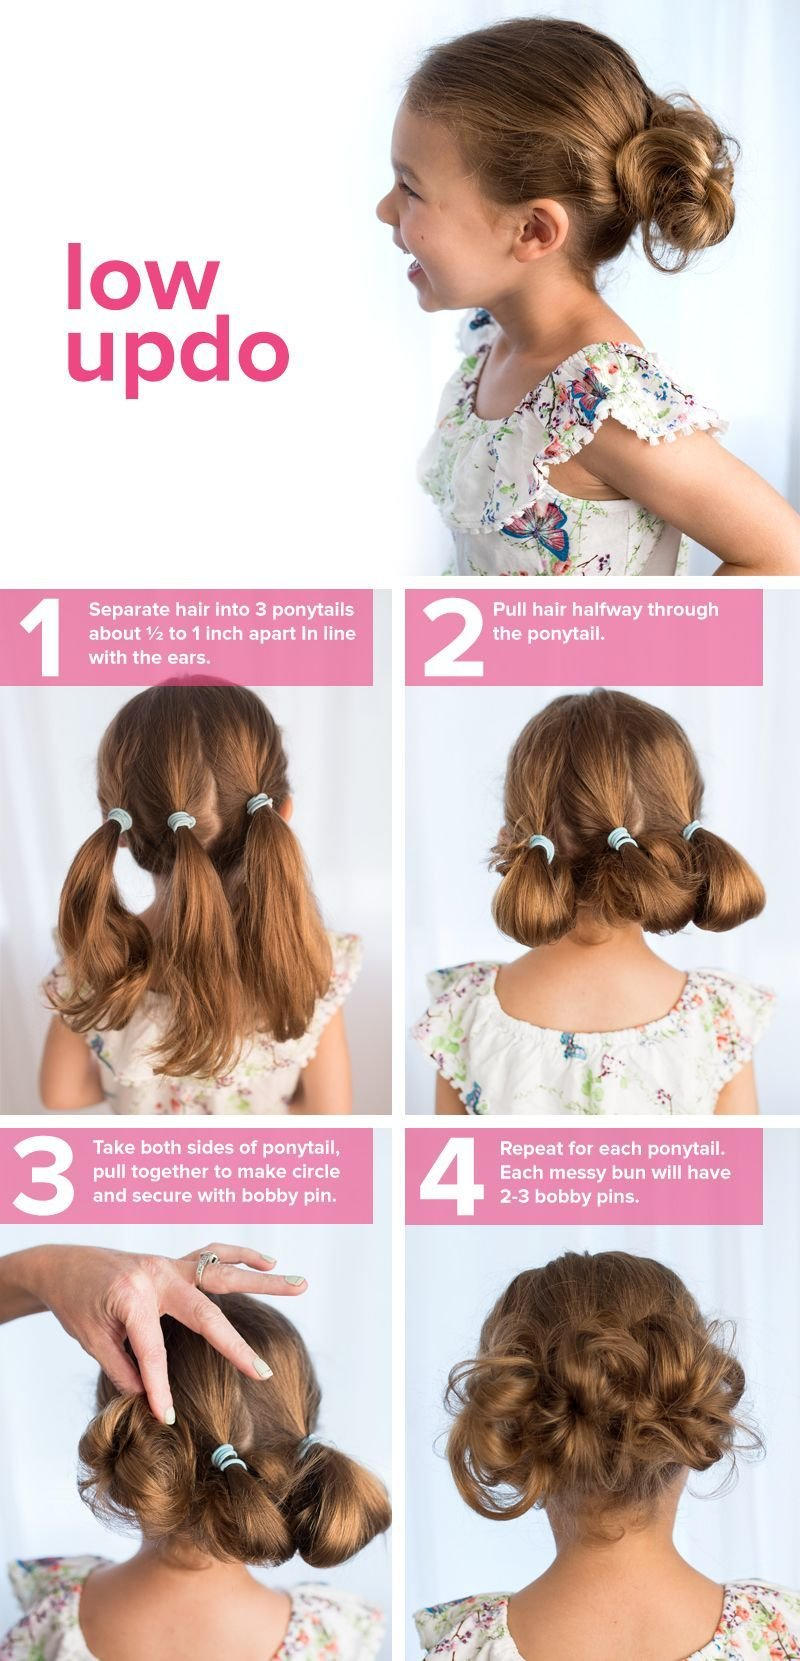 The Best 5 Fast Easy Cute Hairstyles For Girls Low Updo Pictures